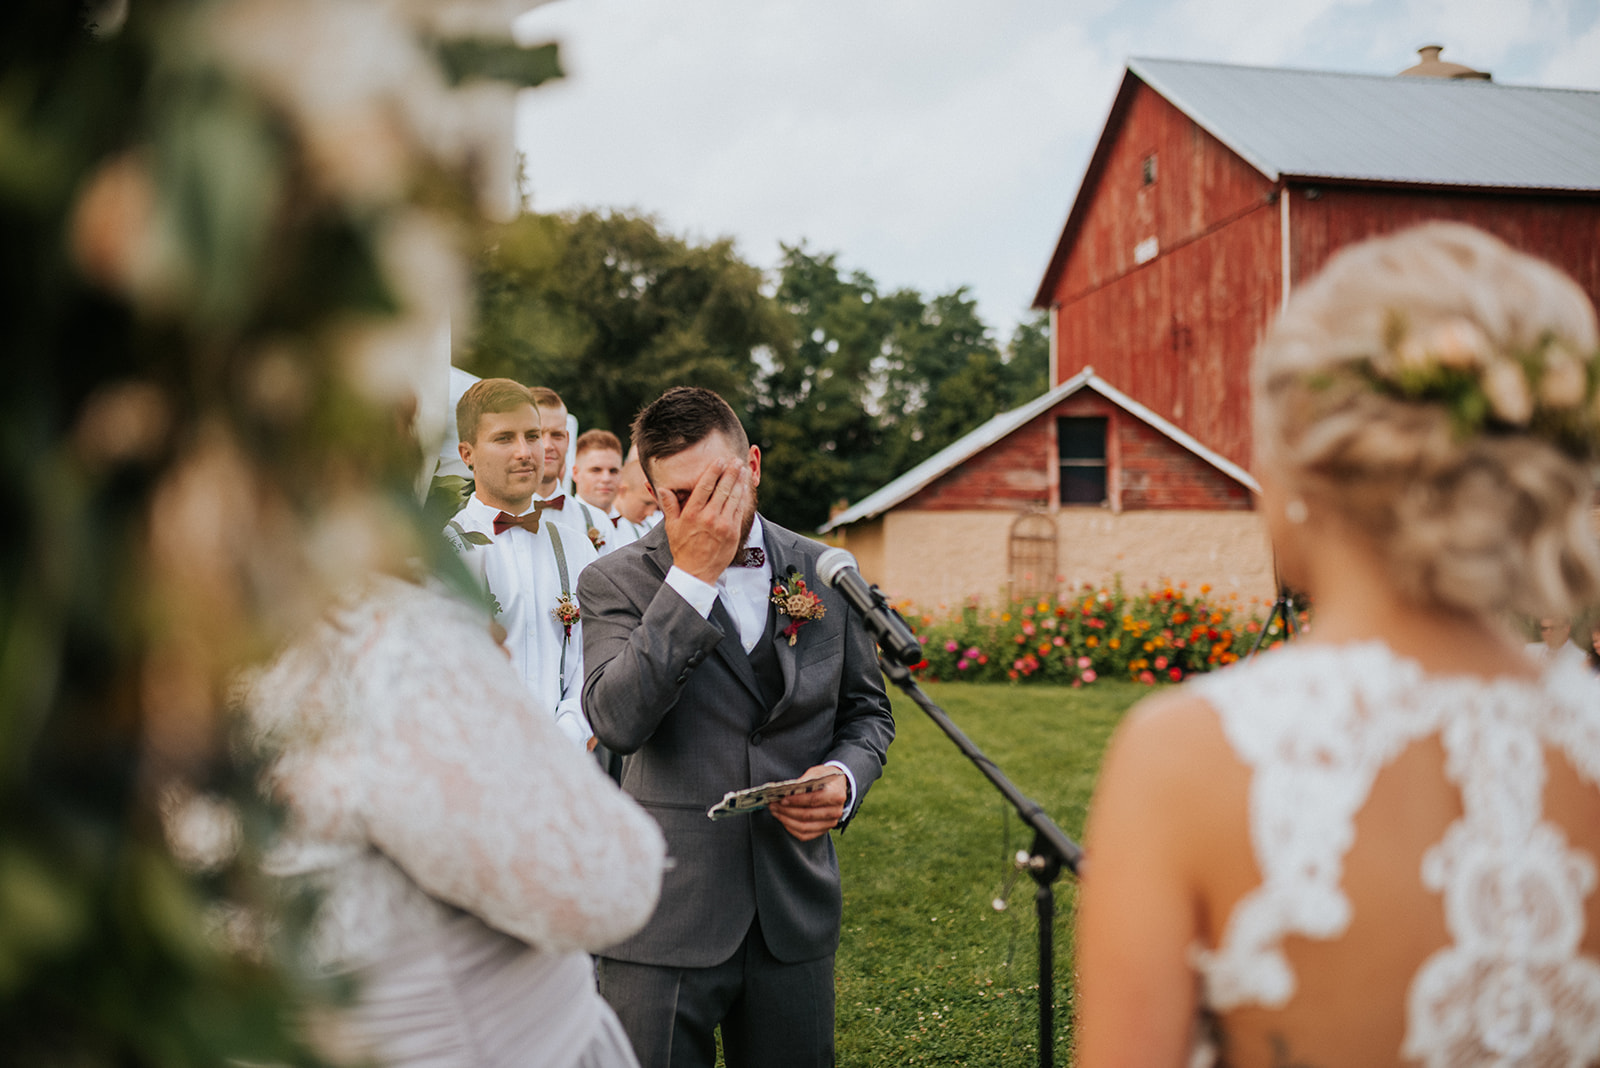 overthevineswisconsinwedding_0667.jpg